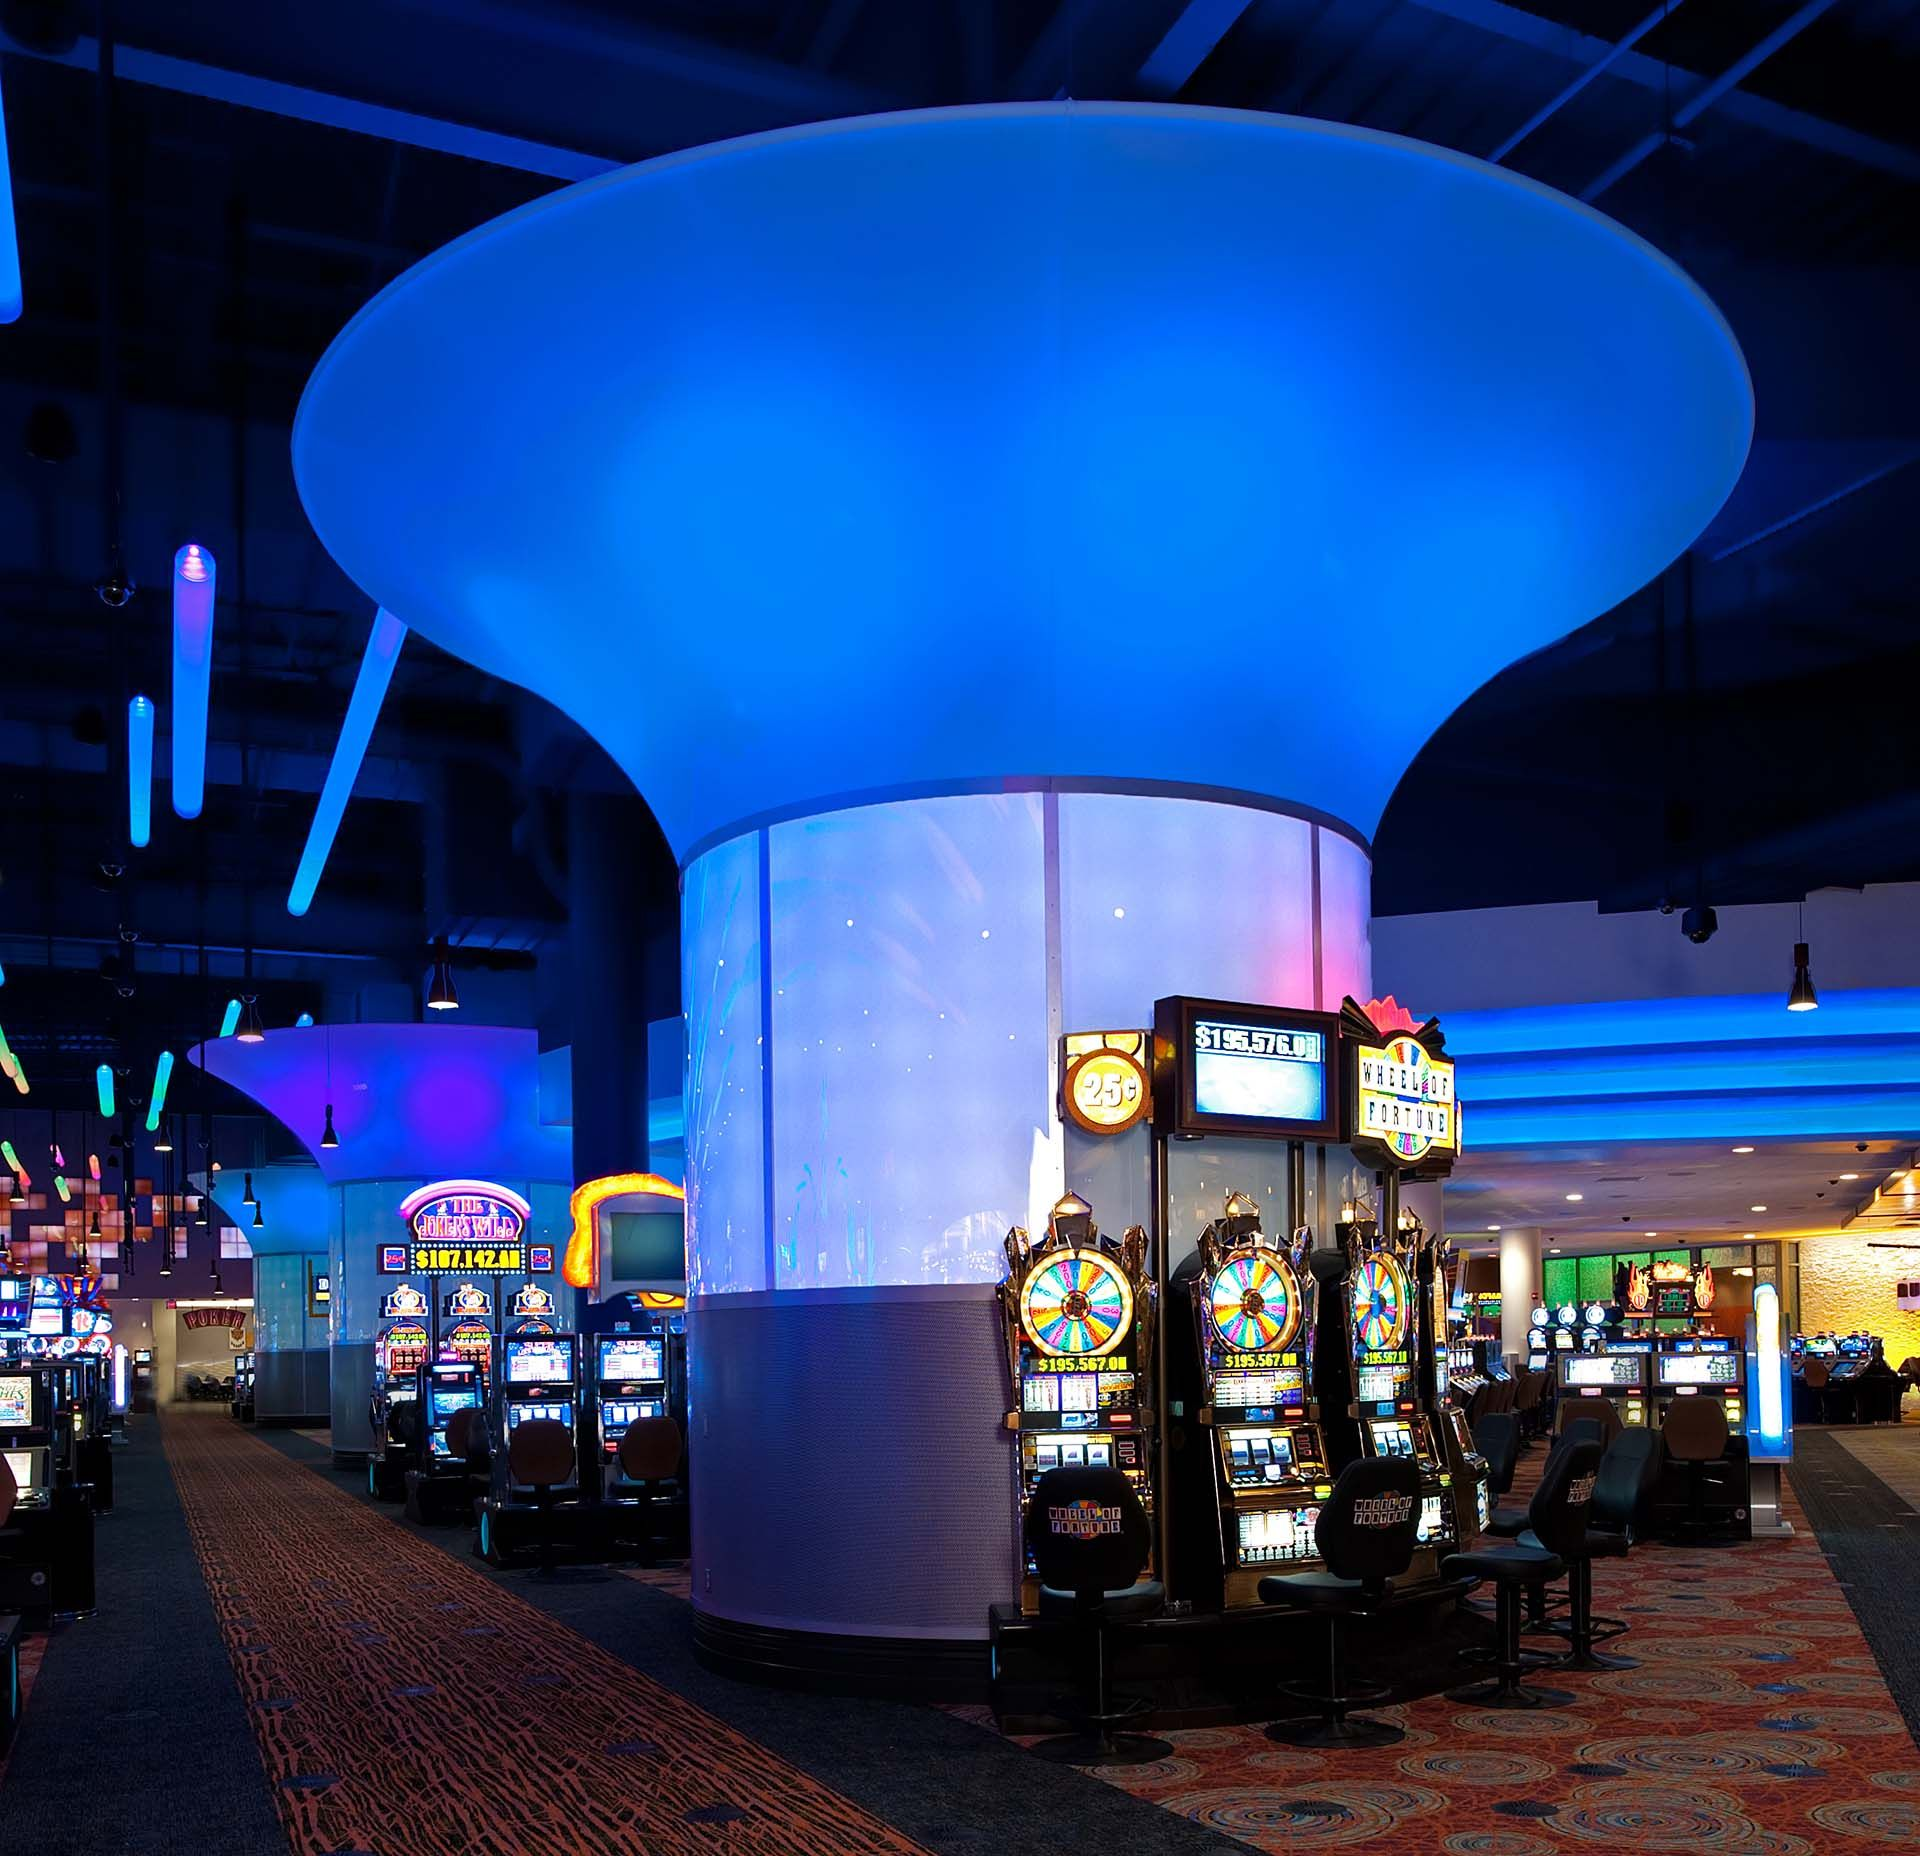 Firekeepers Casino | Columns // the high columns utilize a combination of four different materials: acrylic, aluminum, 16 gauge perforated steel panels, and a 24 ft diam. translucent fabric cone top // Hospitality Engineered Fabricated Vibrant Lighting